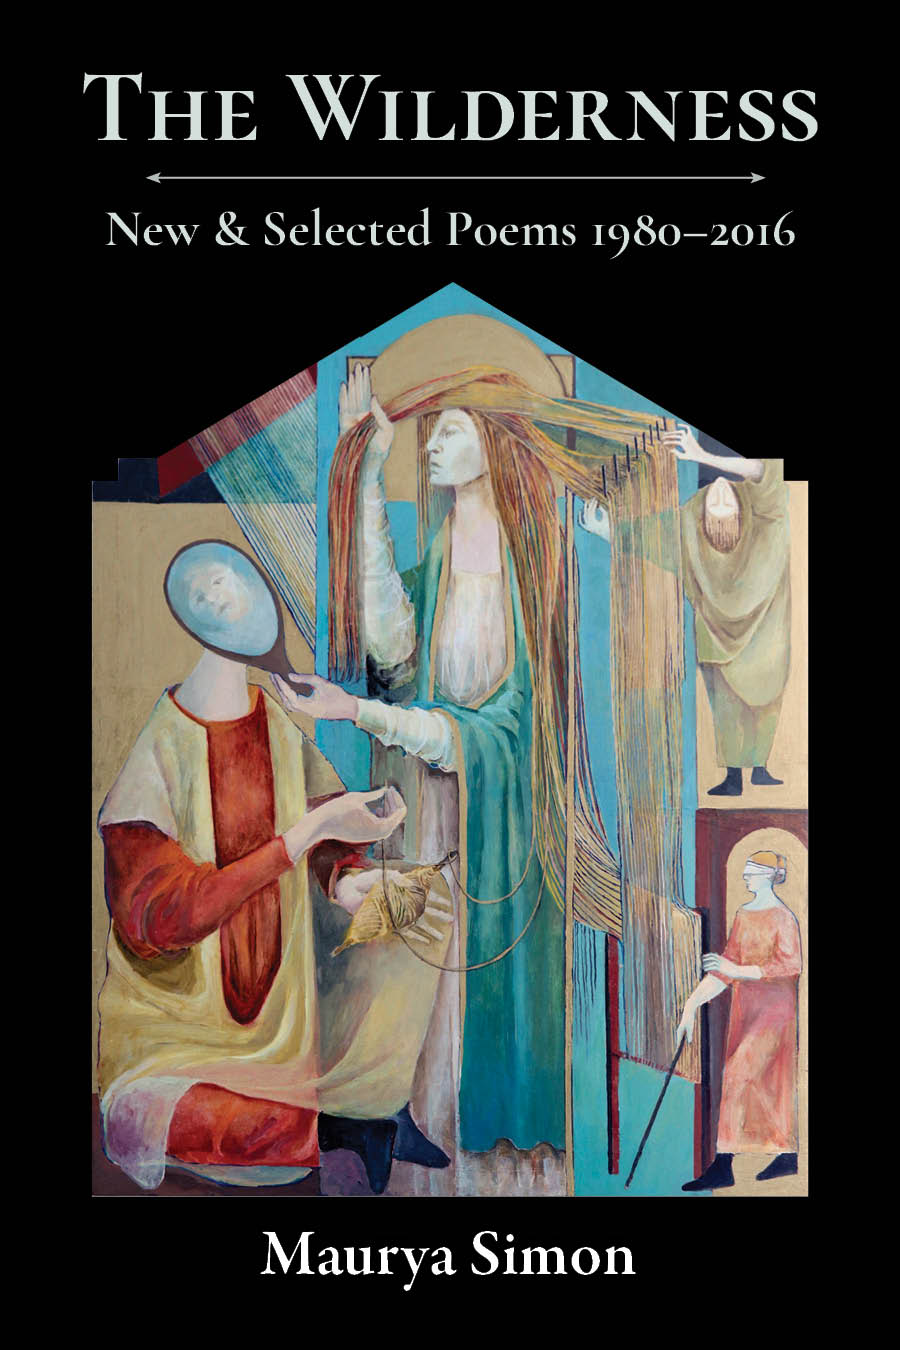 An old renaissance like painting of a woman with long hair holding up a mirror with a face inside of it and white script that reads The Wilderness New and Selected Poems 1980 – 2016 by Maurya Simon.